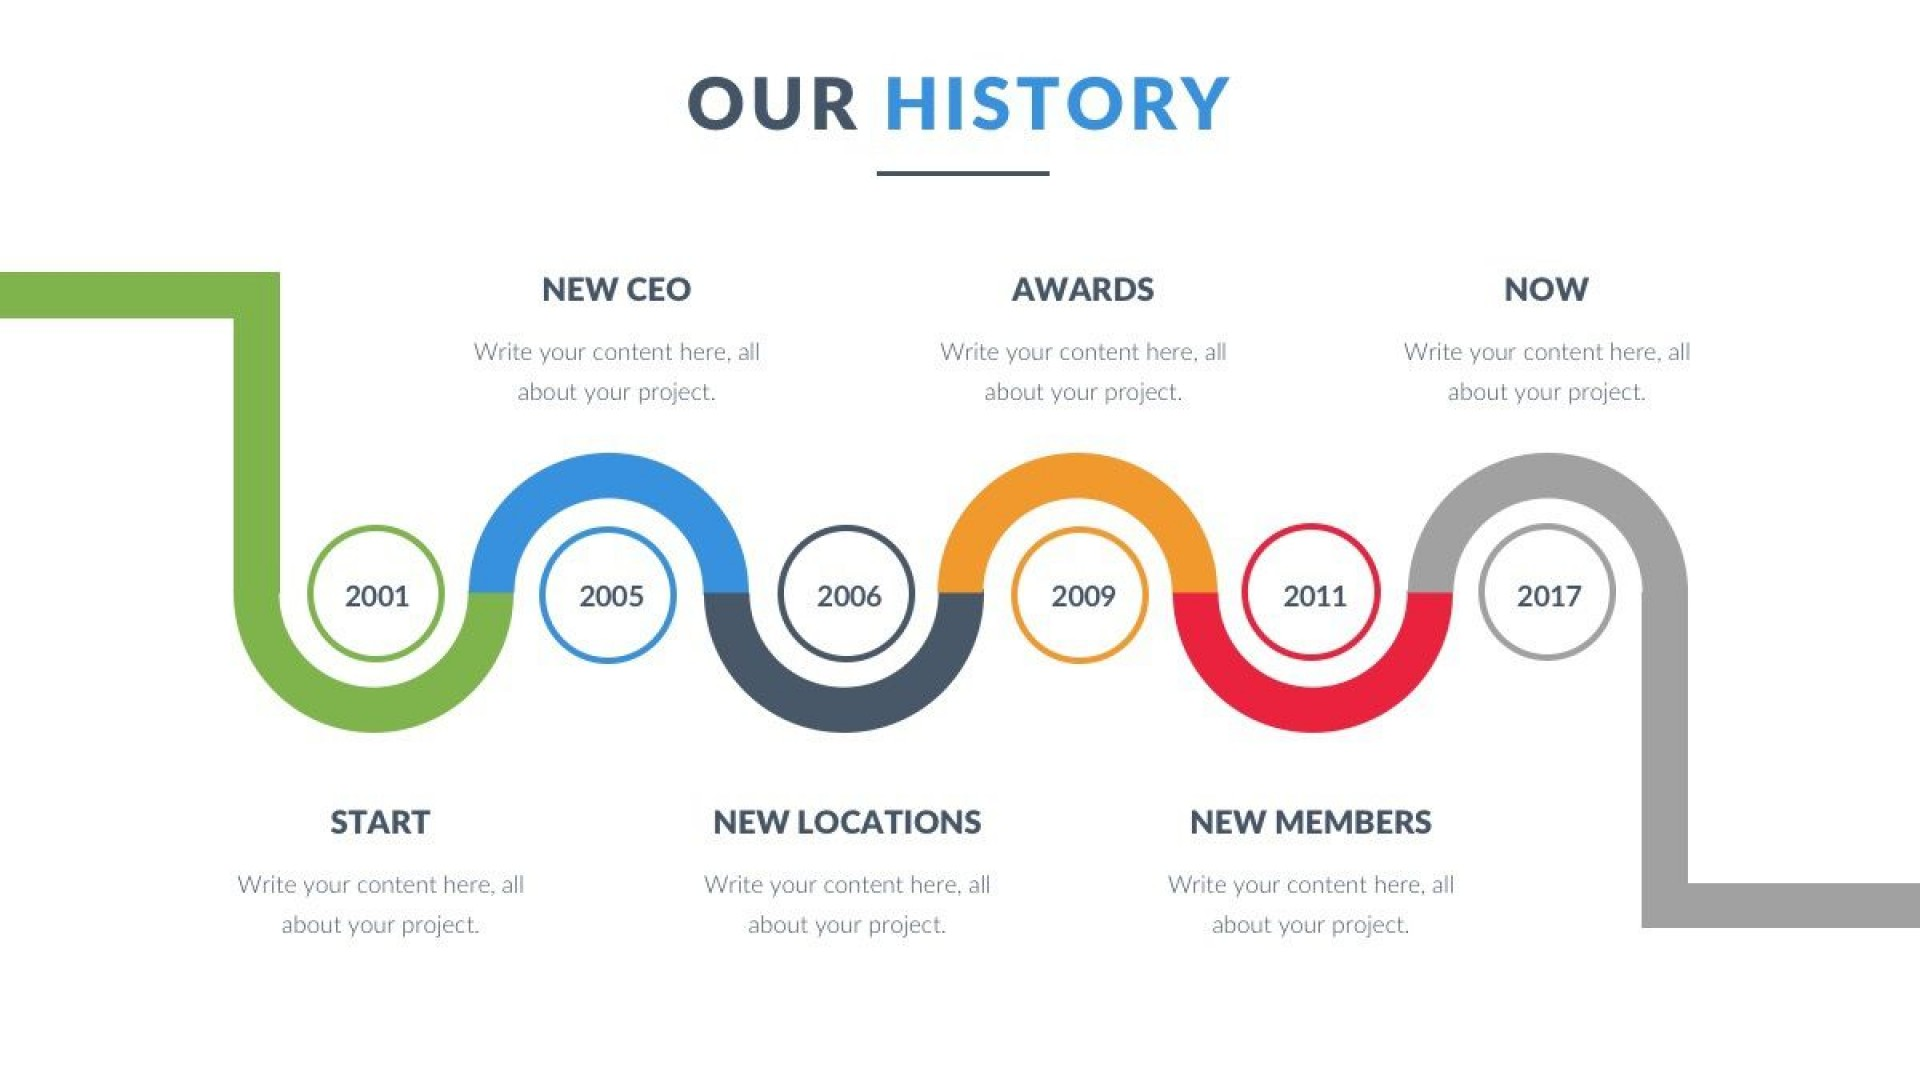 008 Staggering Timeline Template For Presentation Idea  Project Example Presentationgo1920